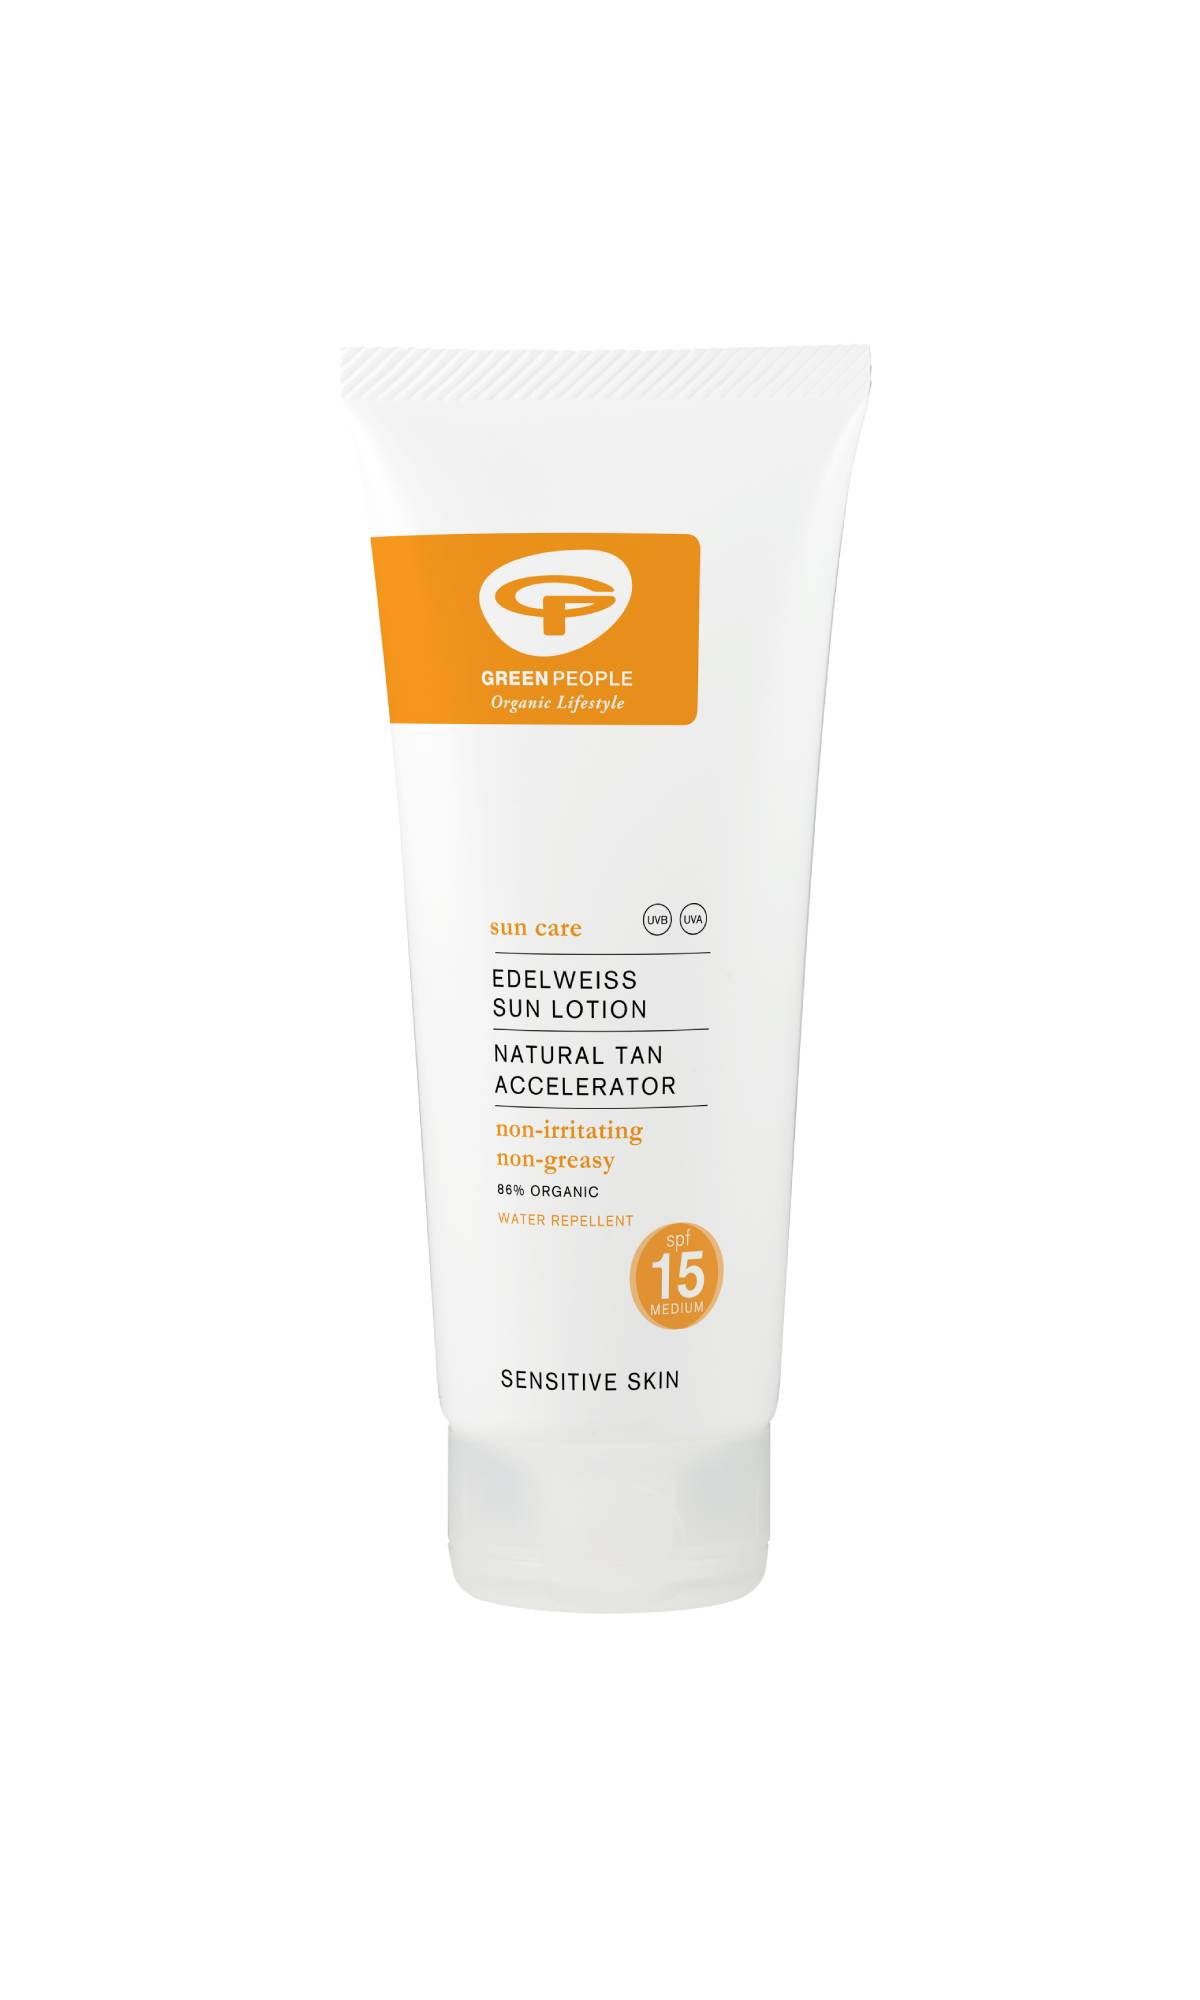 Green People Edelweiss Sun Lotion Natural Tan Accelerator SPF15 - SPF15 may seem quite a bit lower than 30, however it blocks out about 93% of UVB rays (whilst an SPF 30 blocks out 97%), so, as long as it's reapplied every couple of hours, it does an excellent job at protecting from the sun. With organic aloe vera, edelweiss, inositol, green tea and moisturising avocado and without parabens, silicone, alcohol, petrochemicals and other 'nasties', this sunscreen helps you tan faster and maintain the tan for longer. This cream also helps prevent heat rashes and is ideal for those with sensitive skin. Its packaging is fully recyclable. £21.50